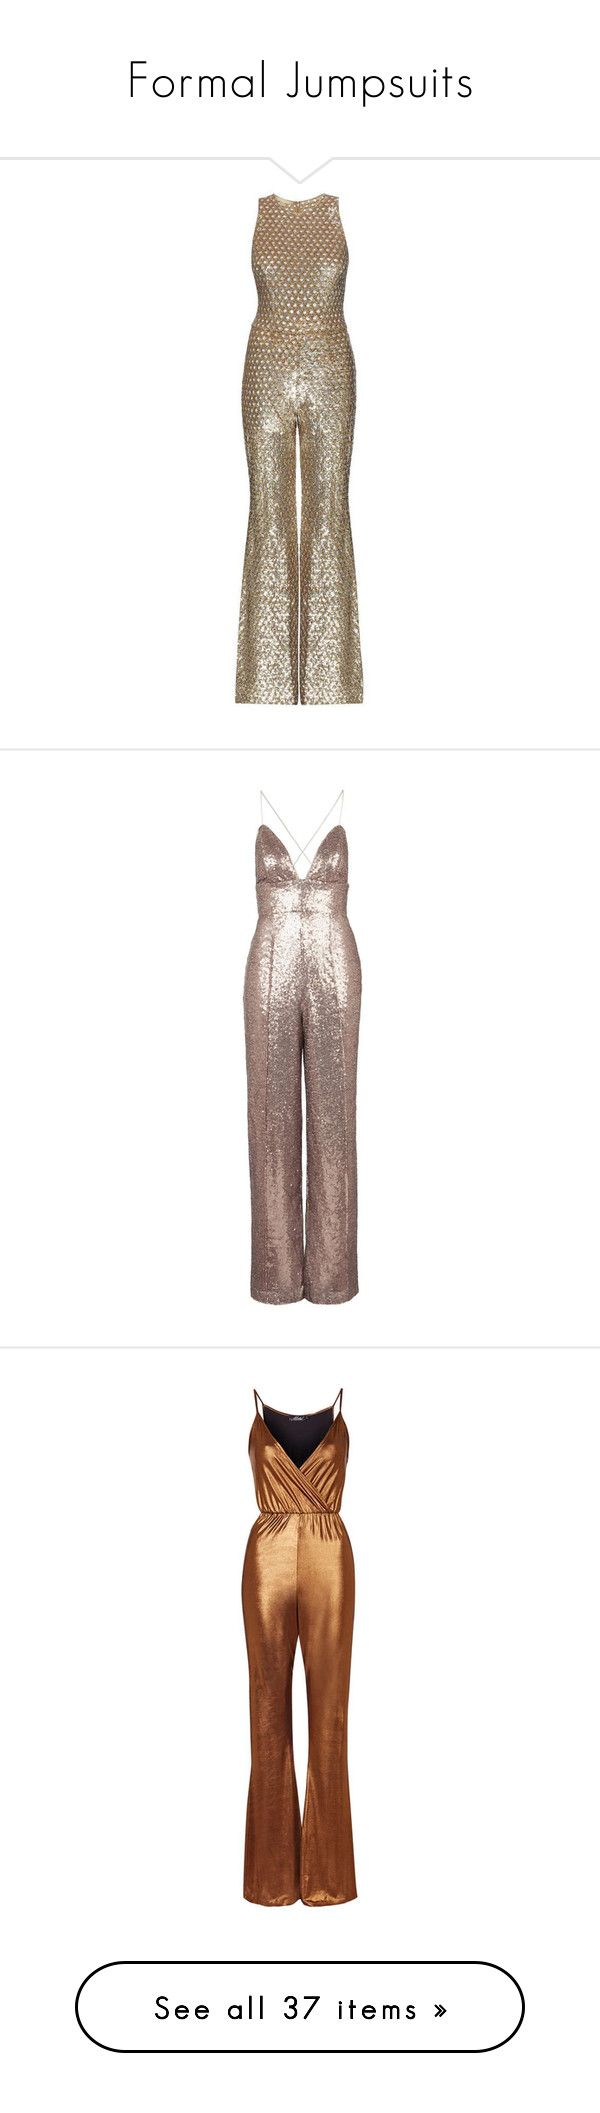 """""""Formal Jumpsuits"""" by mscody ❤ liked on Polyvore featuring jumpsuits, jumpsuit, dresses, metallic, jump suit, metallic jumpsuit, michael kors jumpsuit, brown jumpsuit, embellished jumpsuit and rompers"""